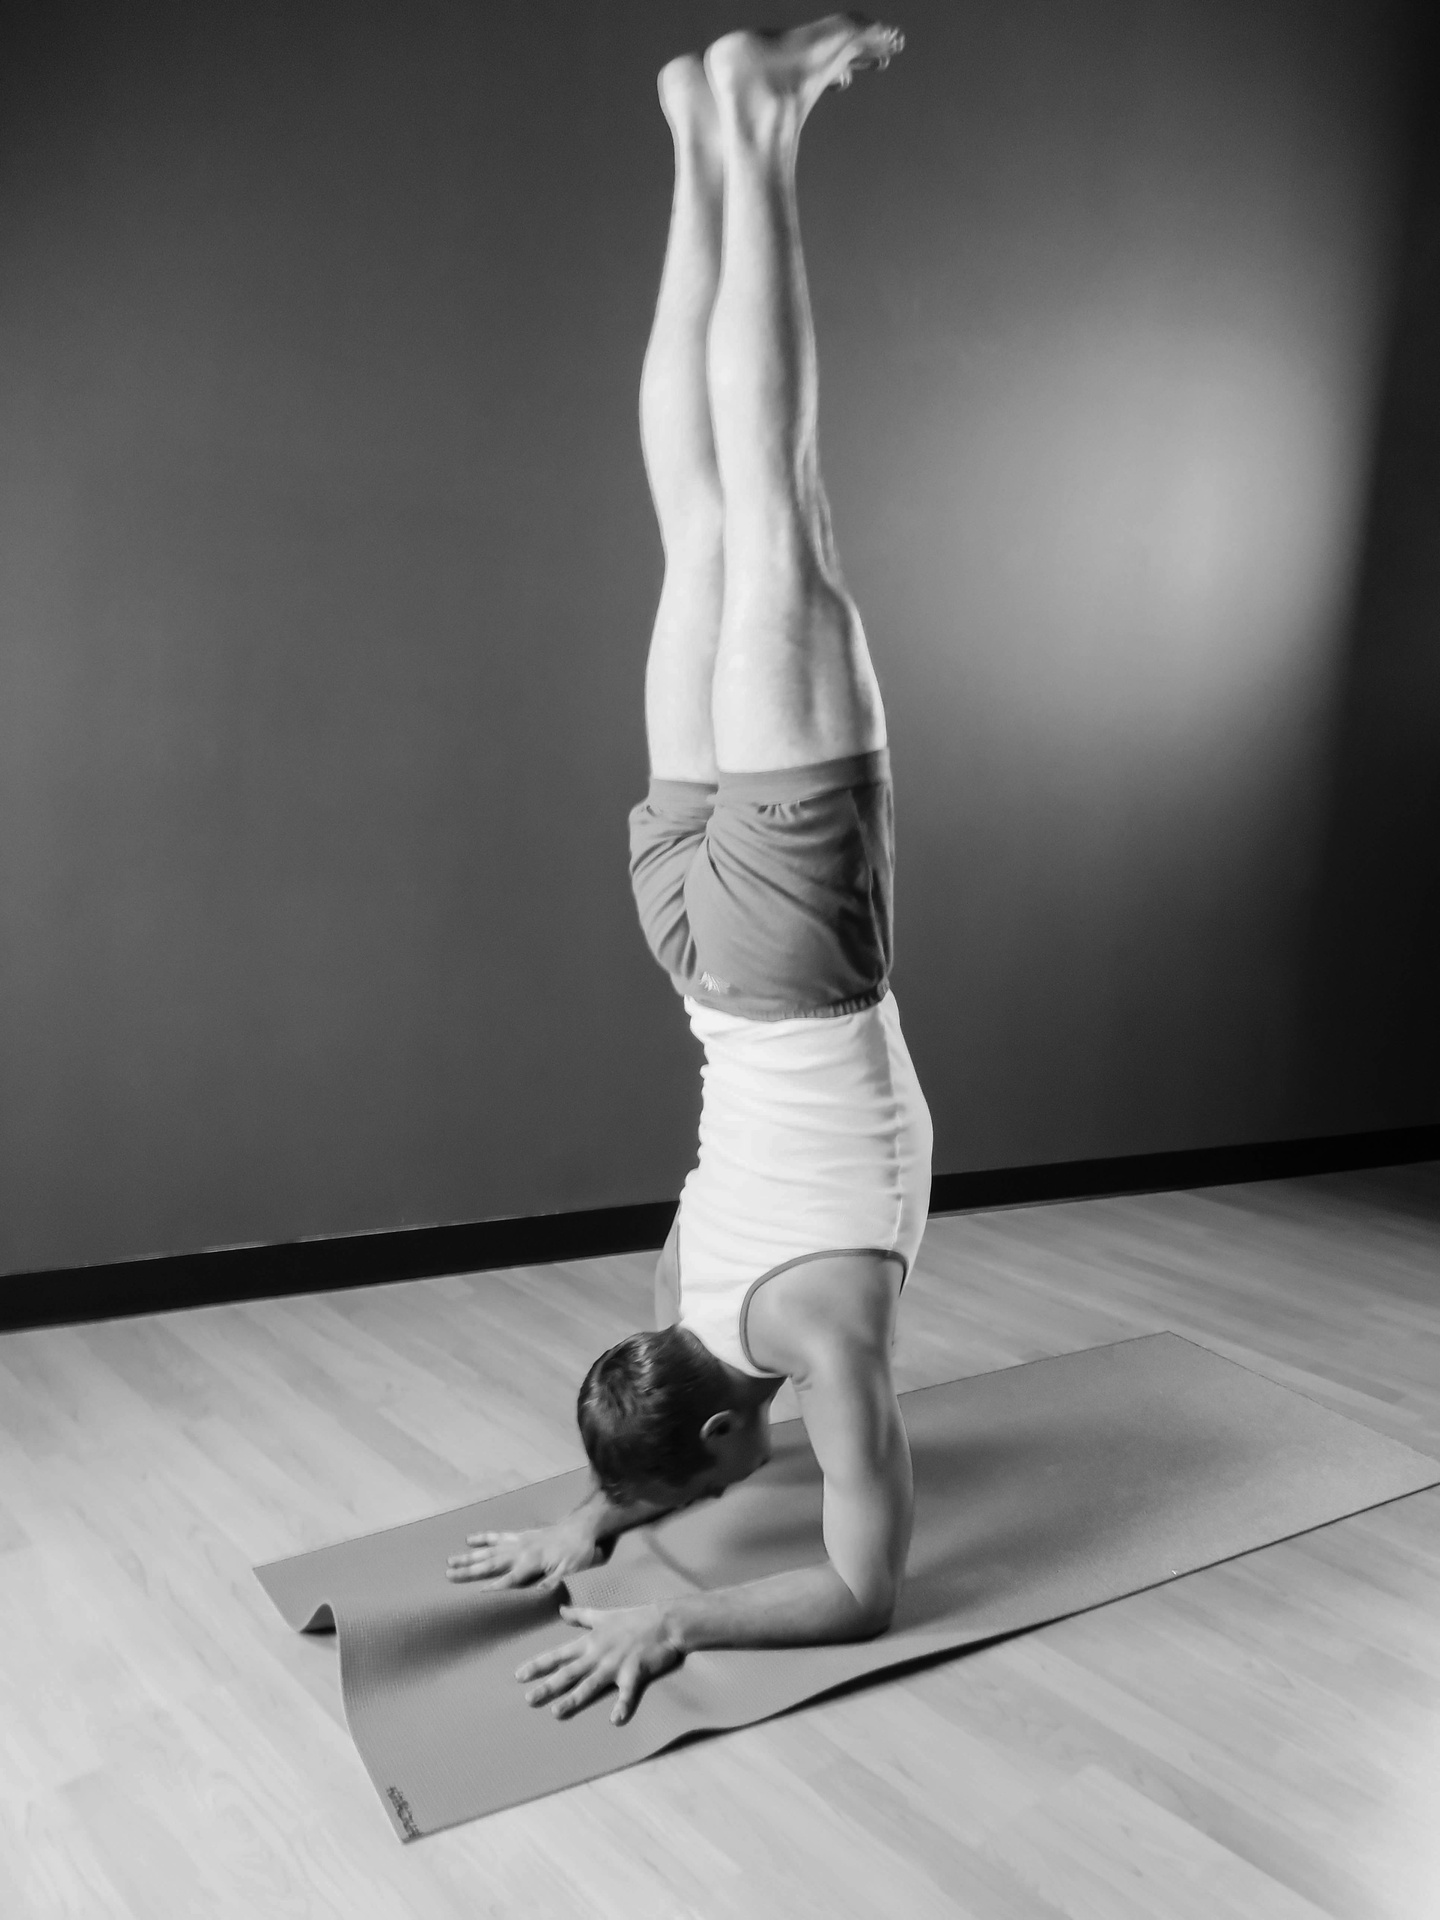 Pricing - Modules cost $875 each. Payment plans are available for those who need assistance. Discounted up-front full program cost: $3,750.Discounted 15-Month Unlimited Class Card is available for 300-hour Yoga Teacher Trainees for $1000.